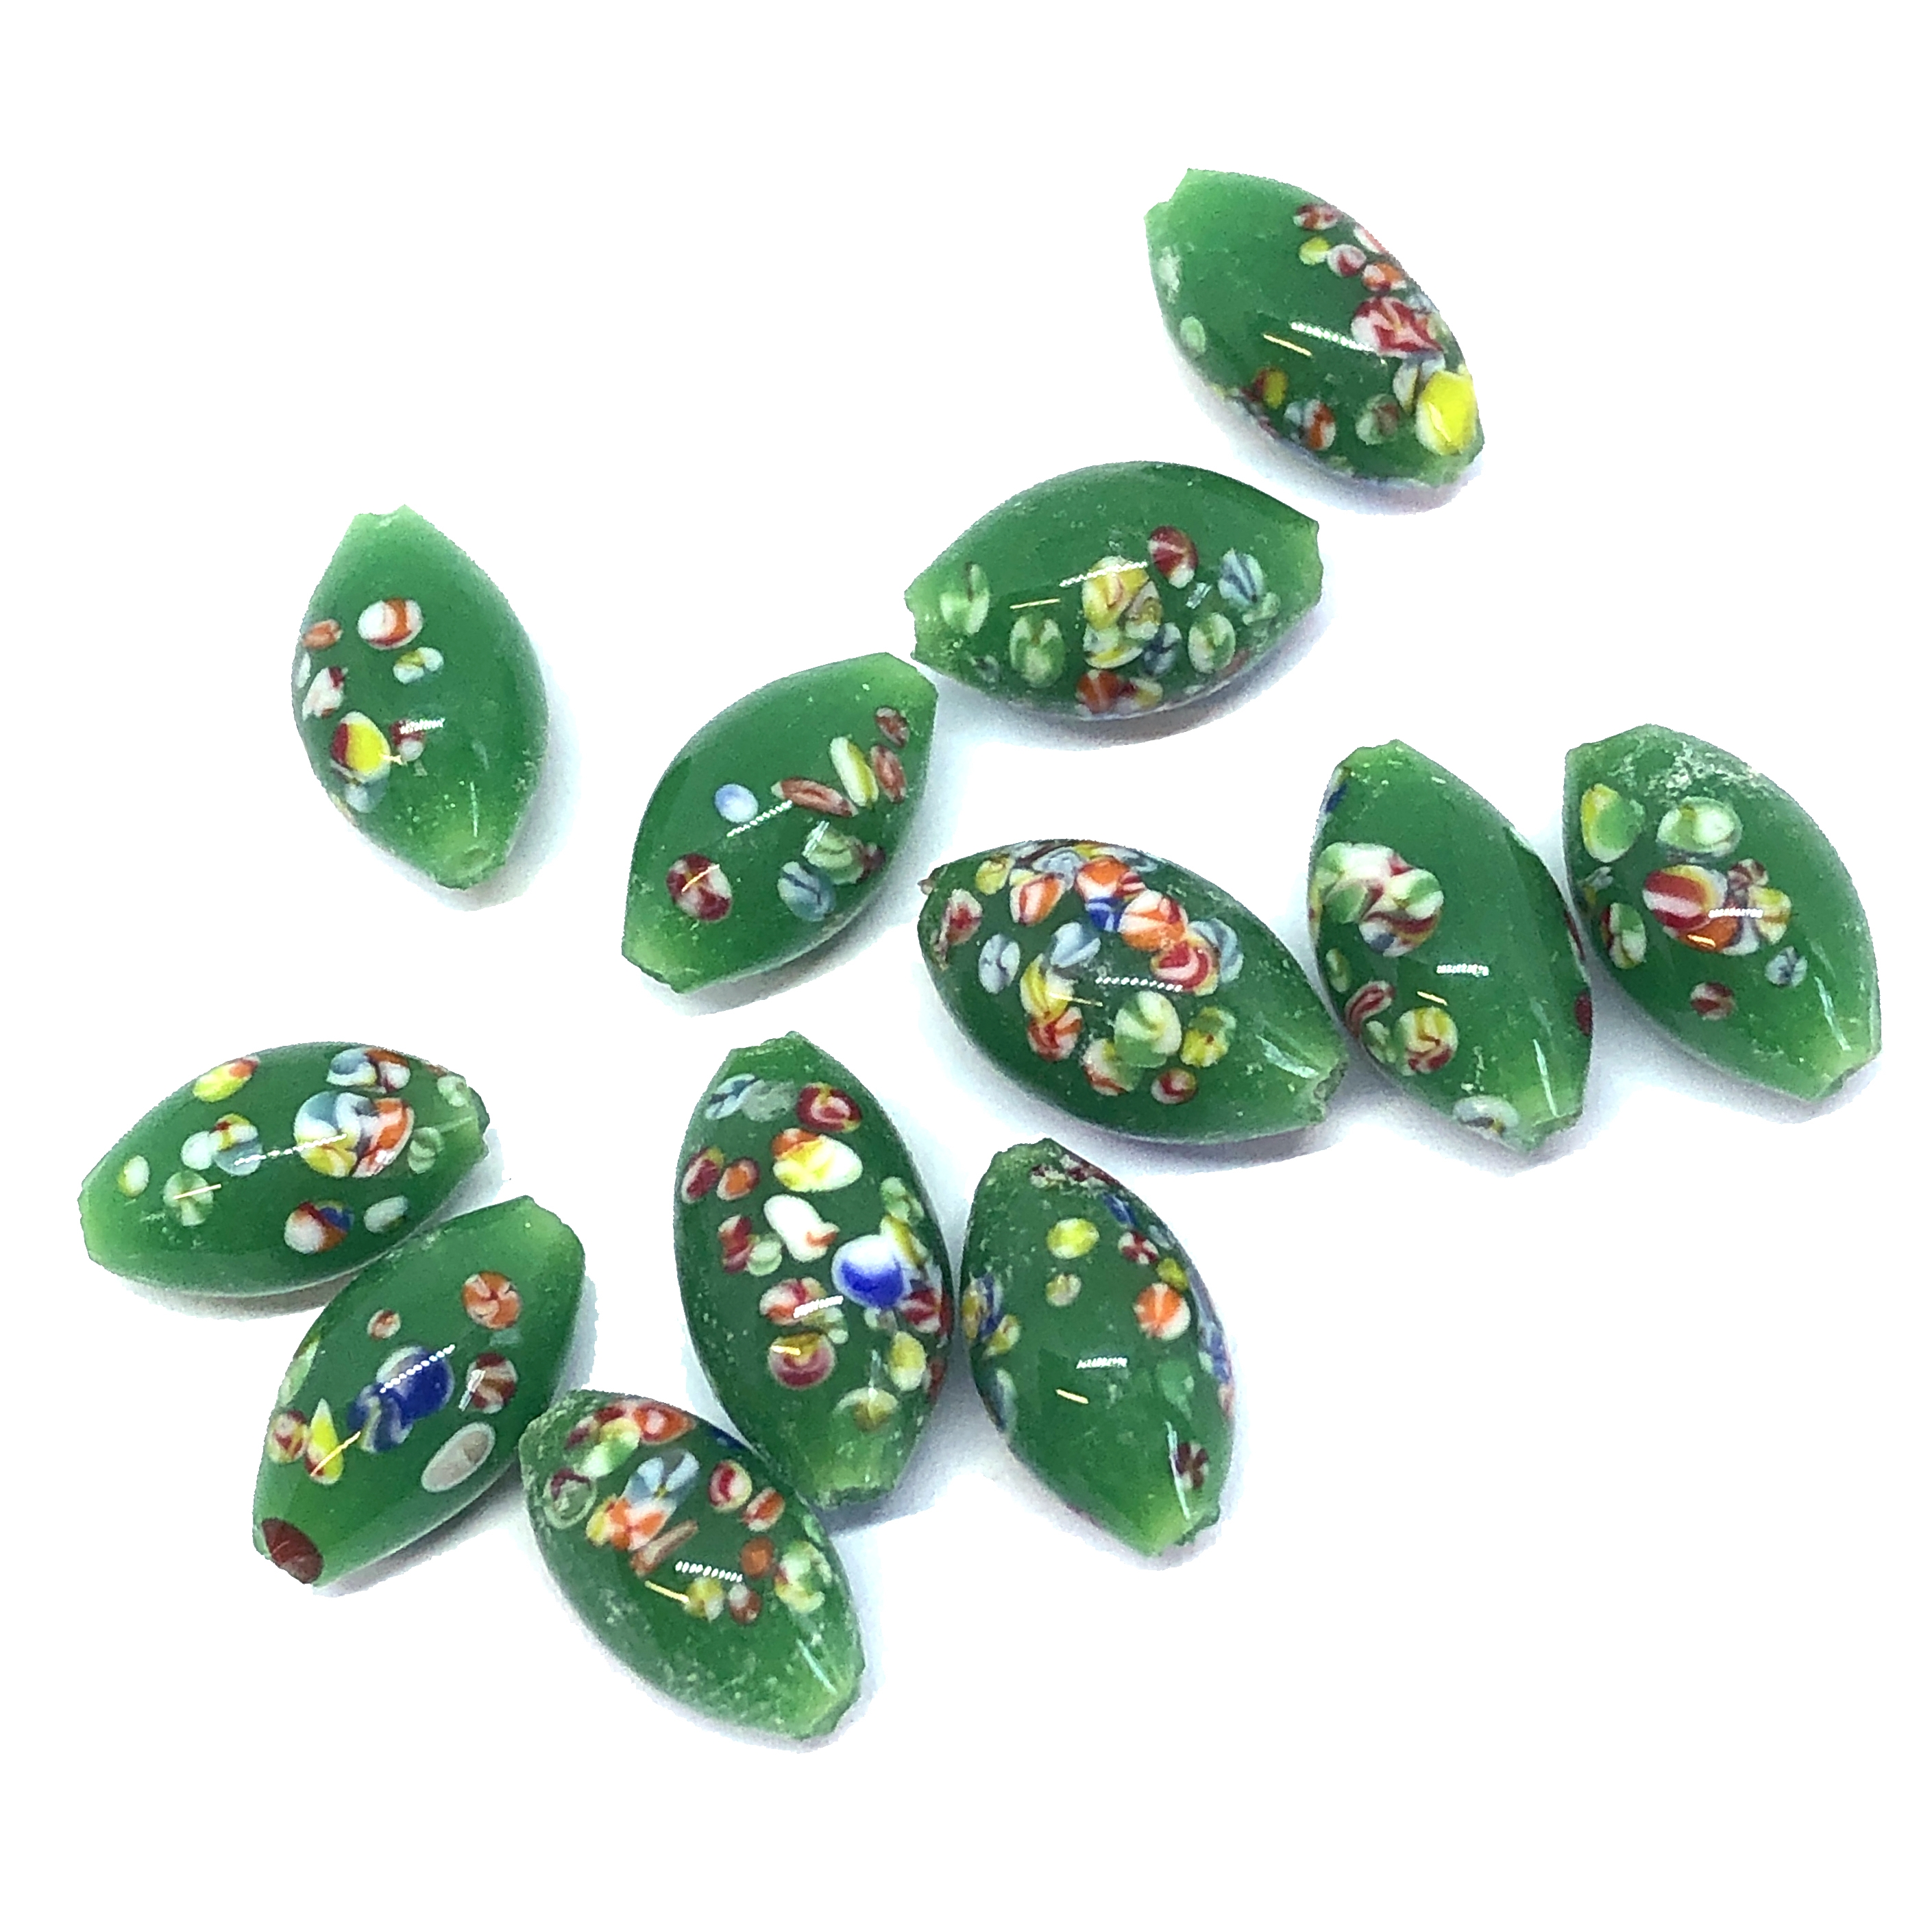 deep green oval glass beads, glass beads, beads, Japanese, glass beads, glass, oval beads, 1960s, glass oval beads, 12x6mm, jade green, beading supplies, jewelry making, jewelry supplies, B'sue Boutiques, jewelry findings, 0231